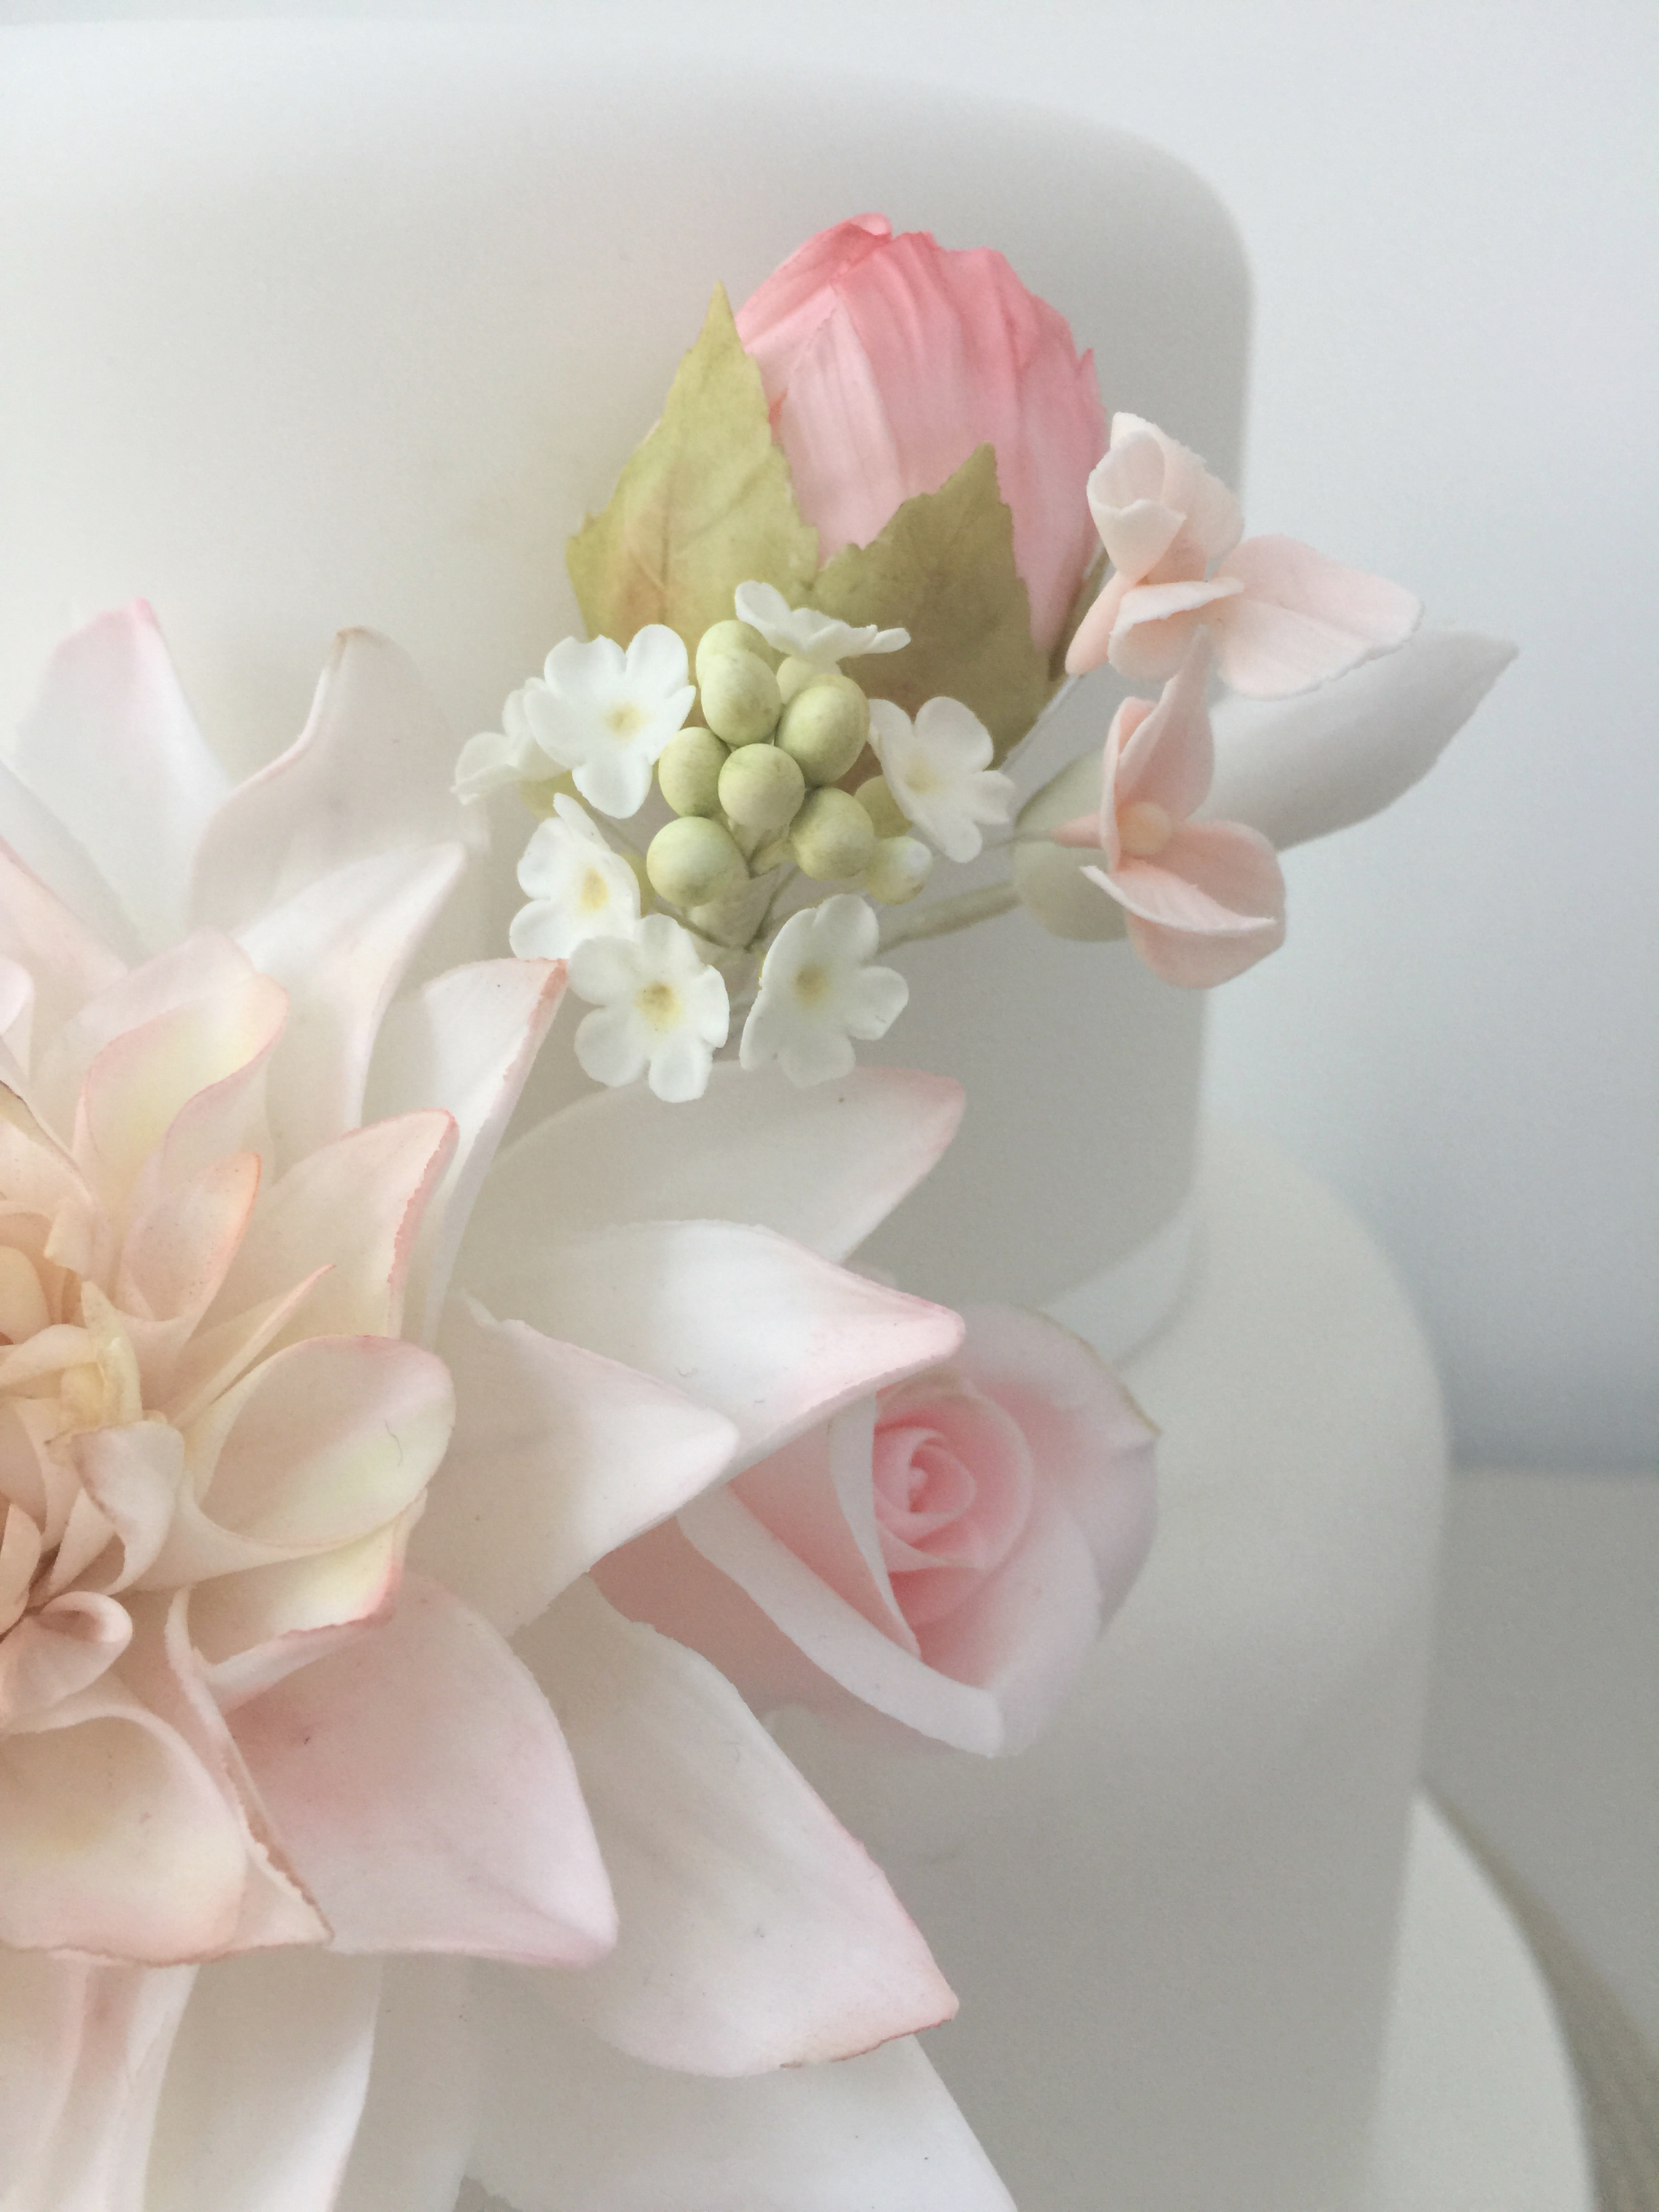 Cake Decorating Classes - The Little Sugar Box